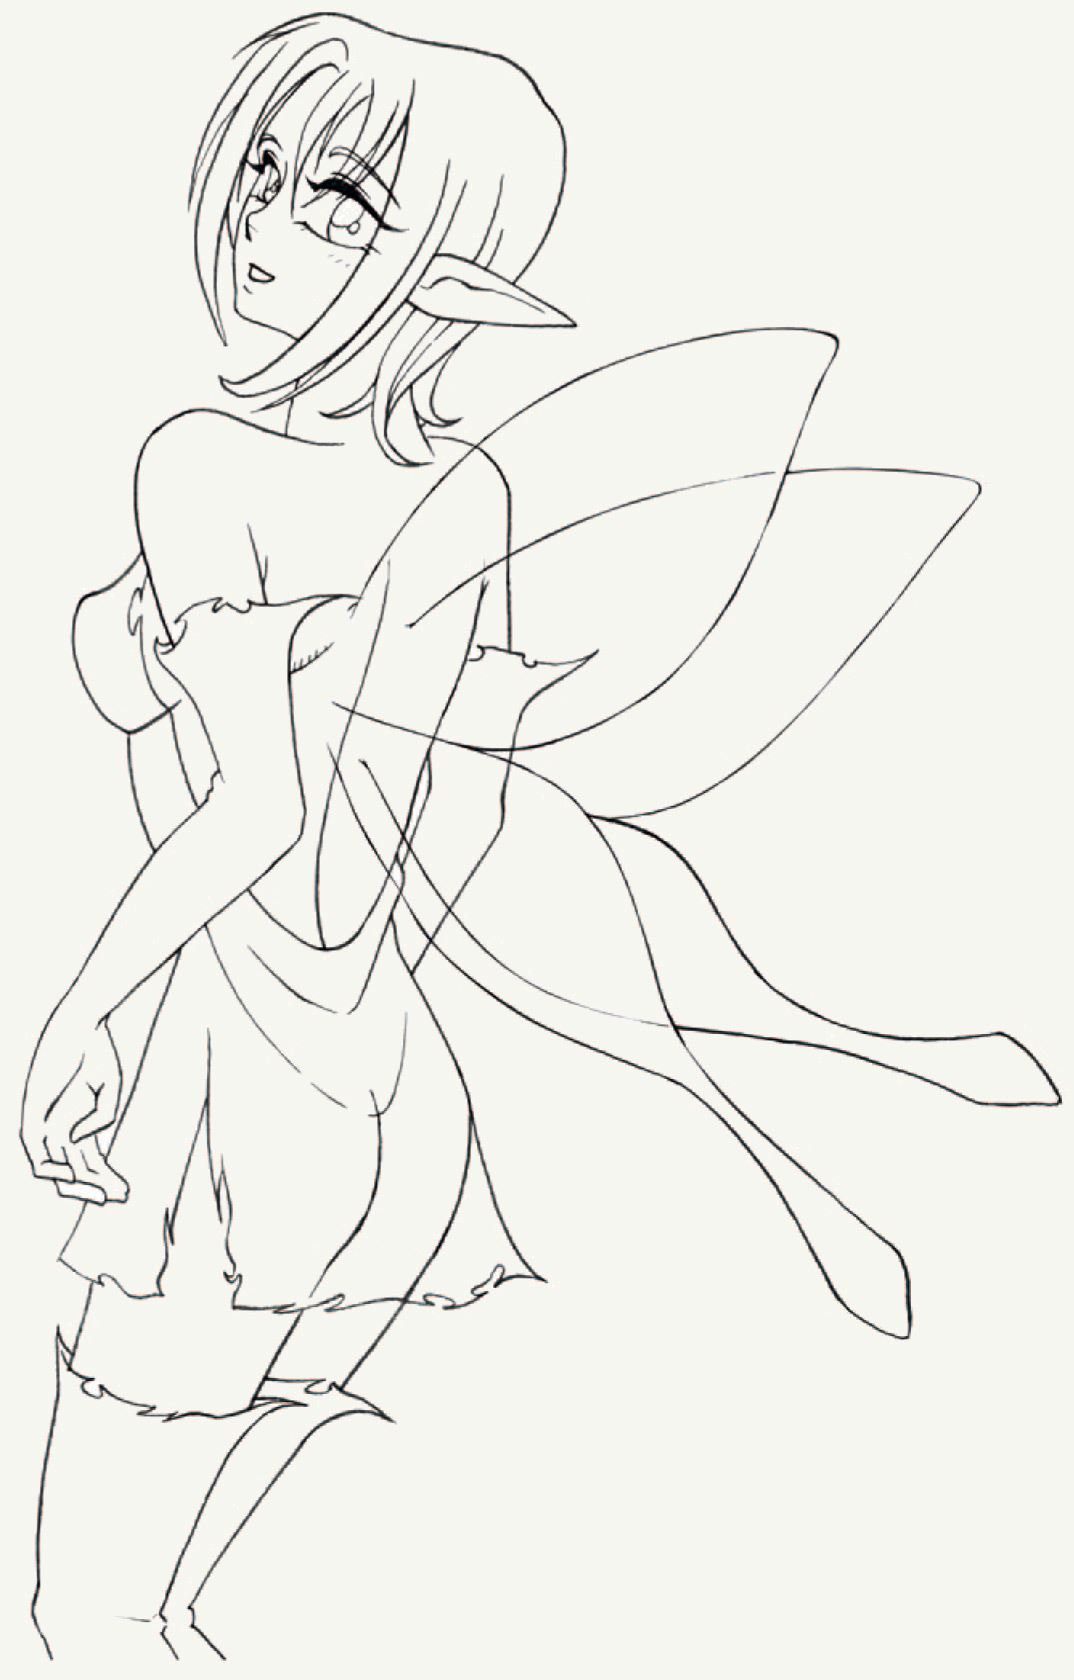 You can make your final alterations to the preliminary sketch the forms of the fairys body are now a bit fuller the left leg more acutely angled and the